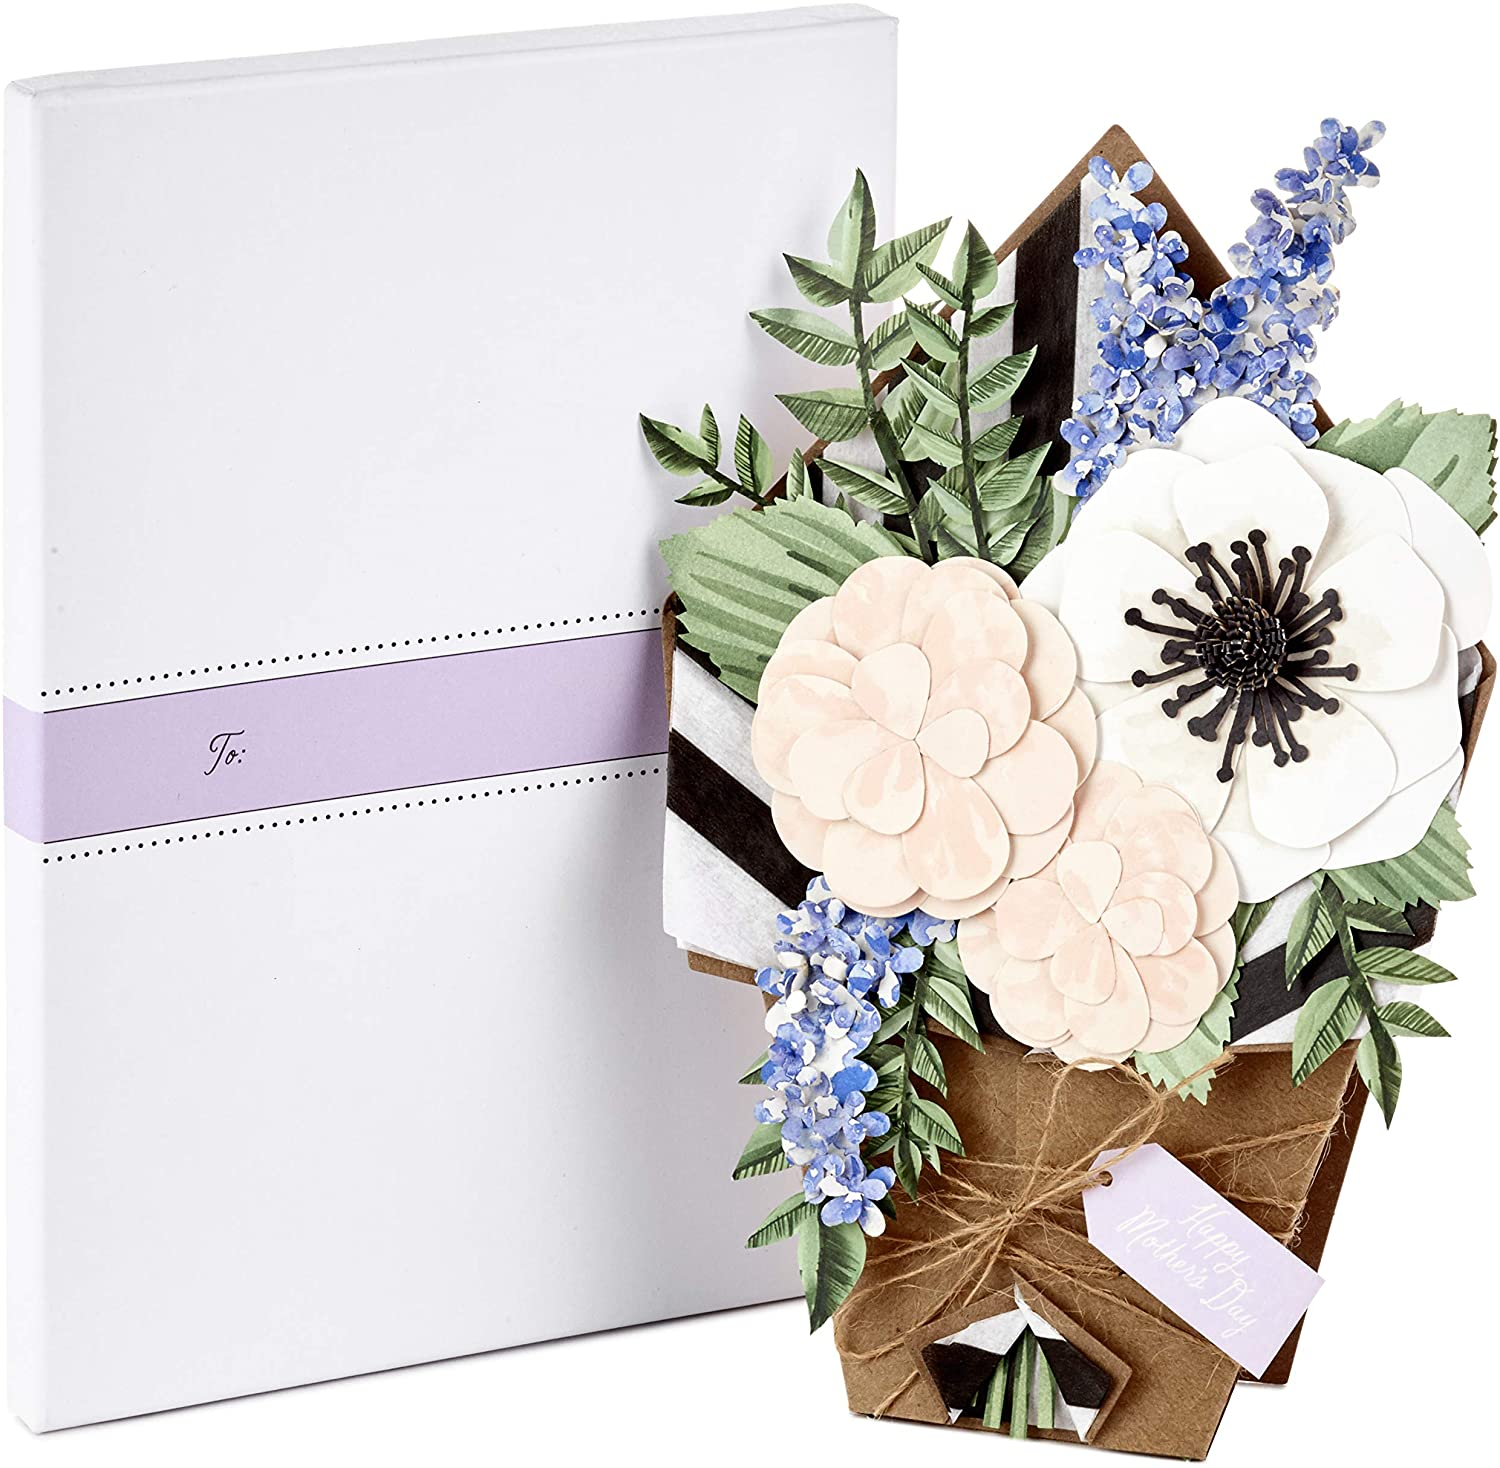 Hallmark Signature Paper Craft Flowers Displayable Bouquet Mothers Day Card for Mom (1499MBC1027)